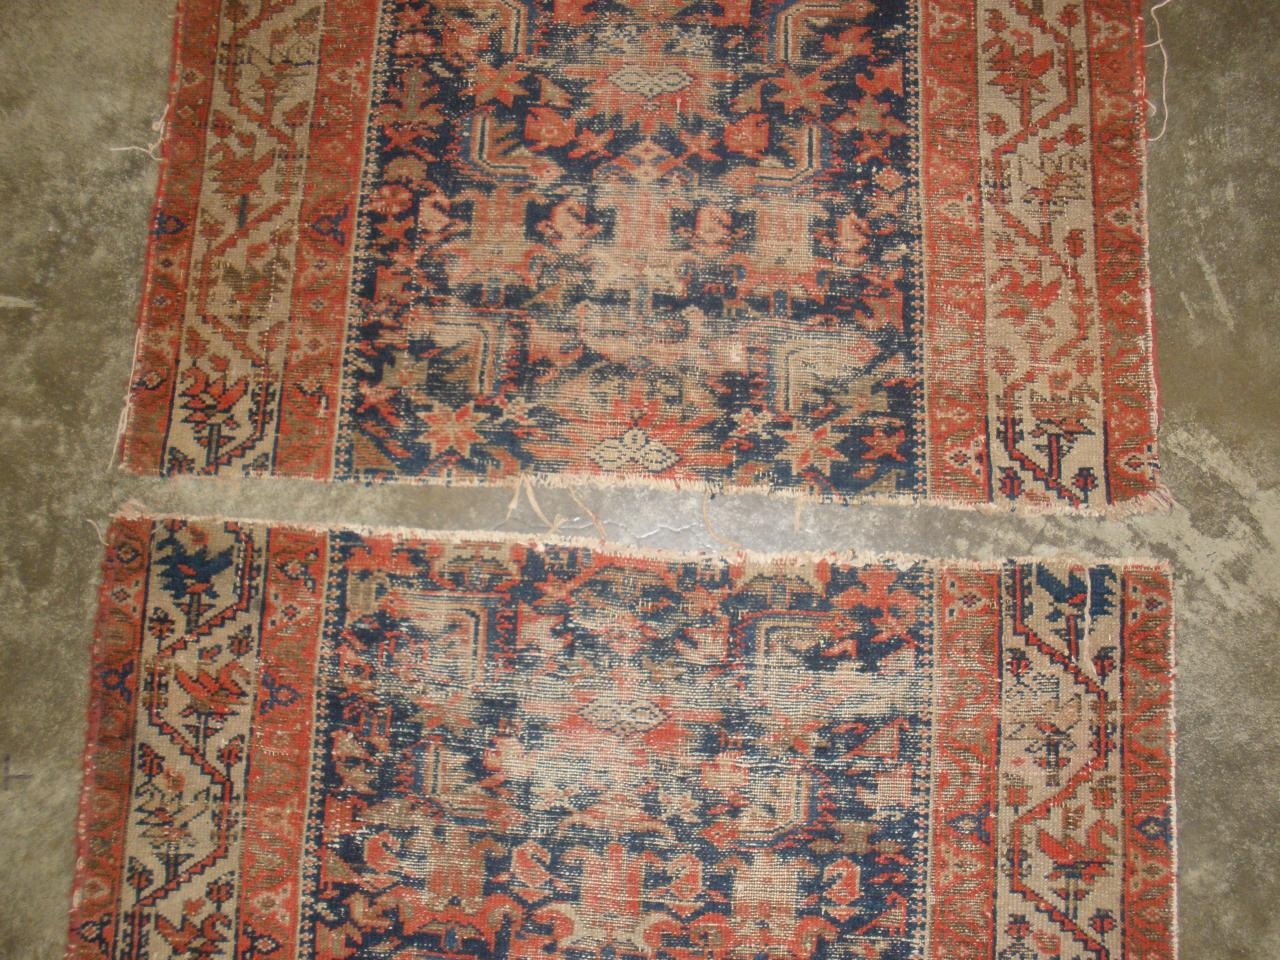 Persian Antique Rug Restoration